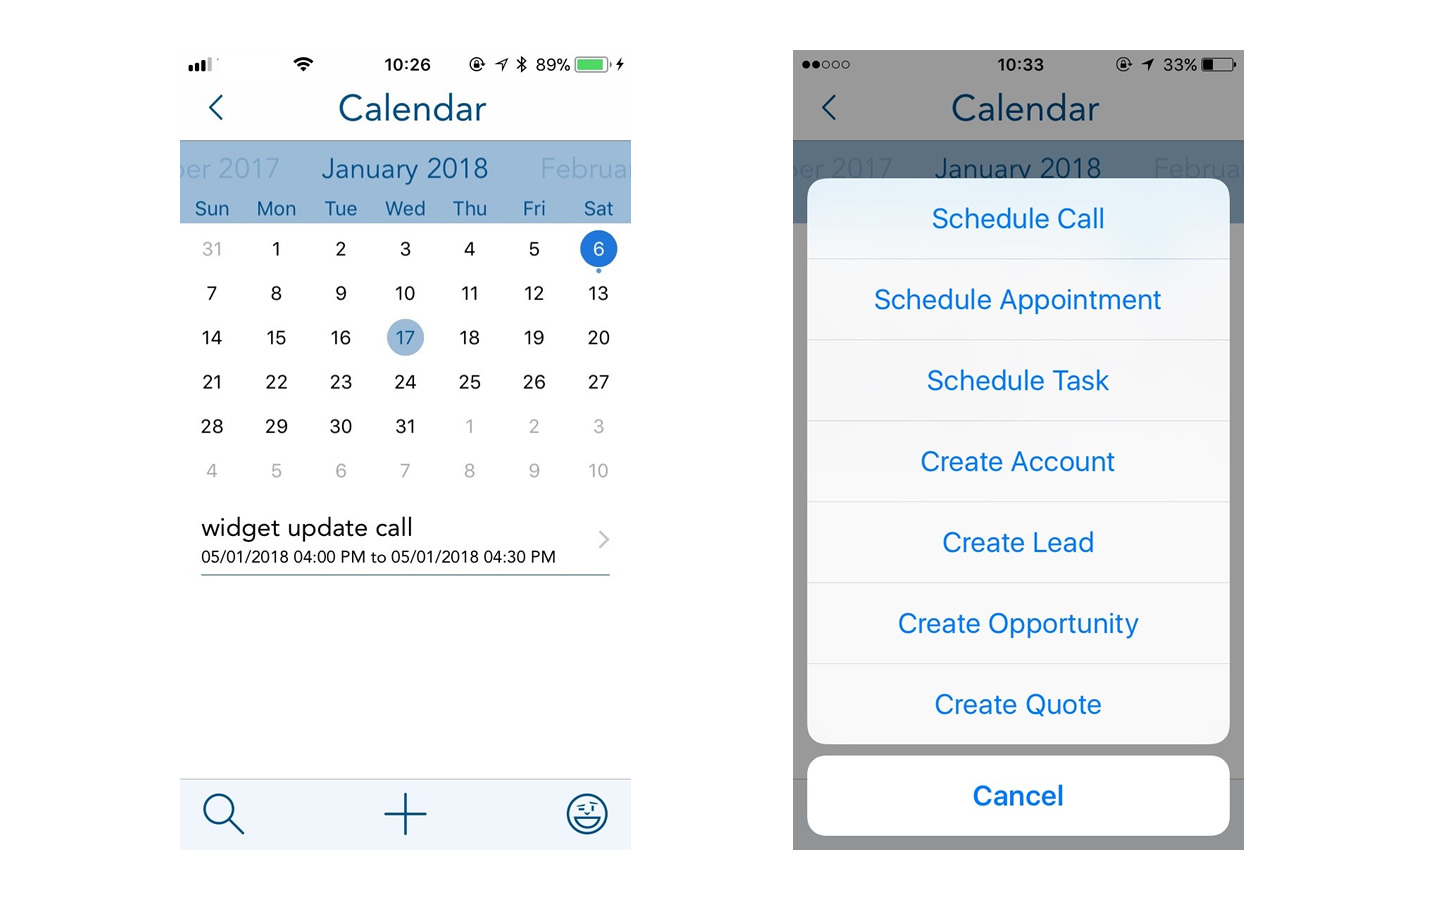 Calendar screenshots from BuddyCRM on ios app